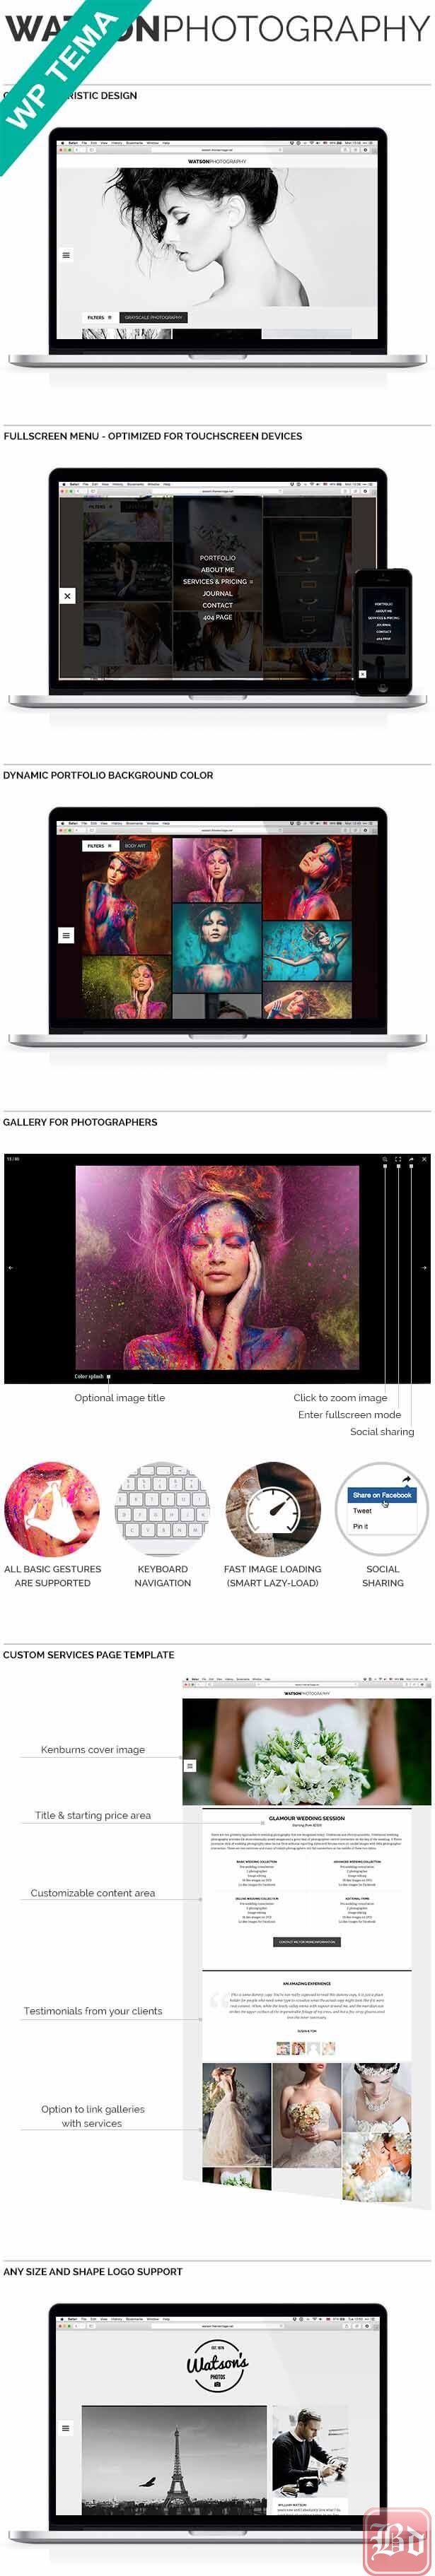 Watson – Photography WordPress Theme